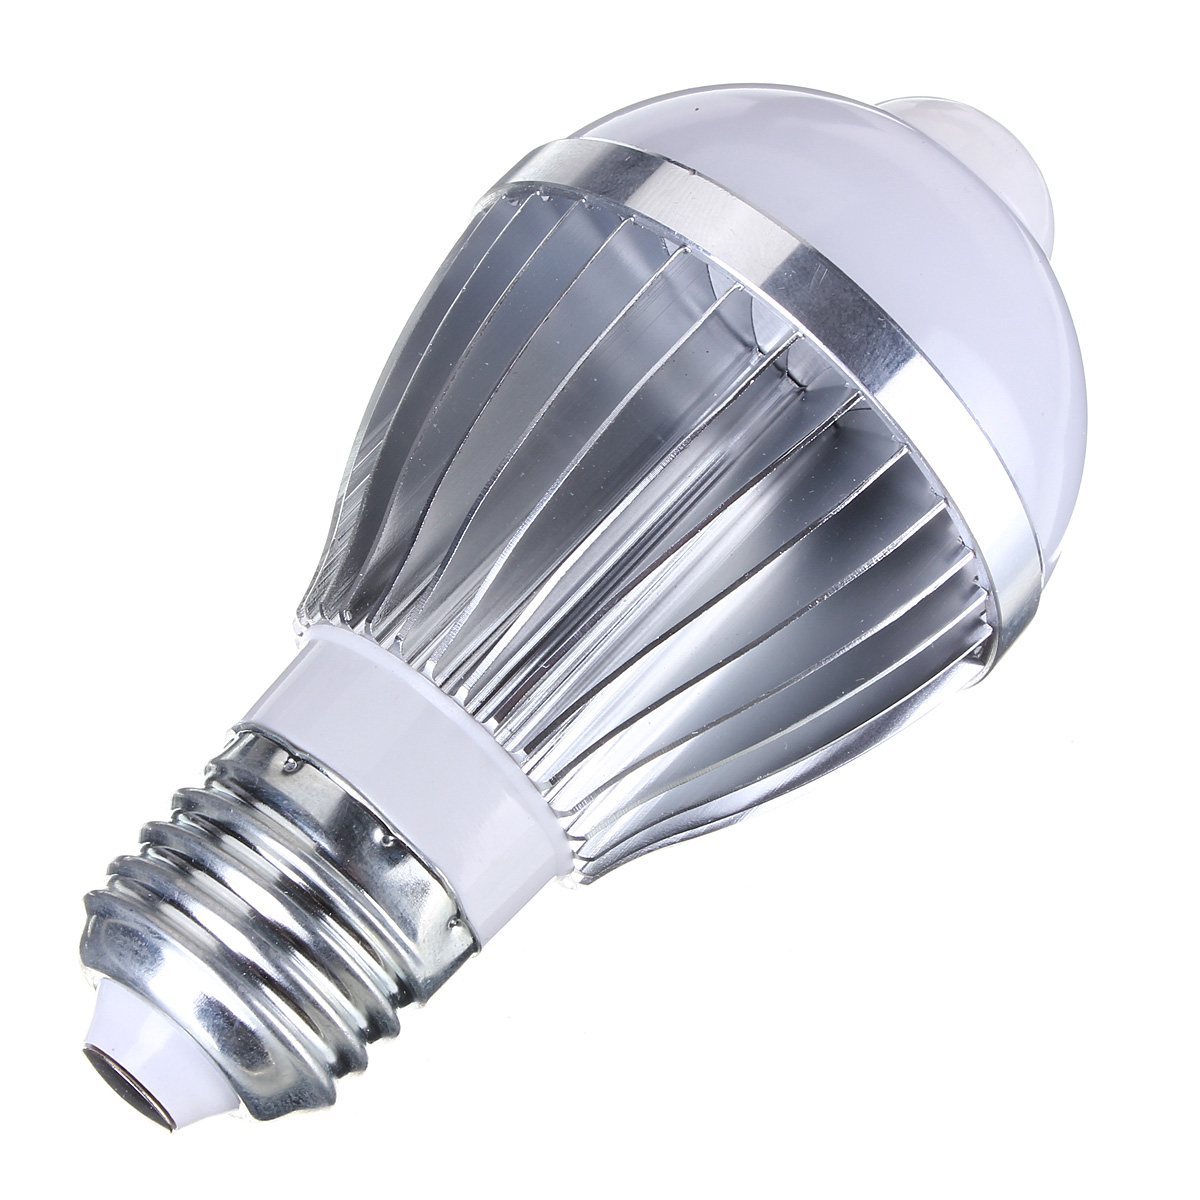 E27 5W Auto PIR Infrared Motion Sensor Detection LED Bulb Lamp 85-265V